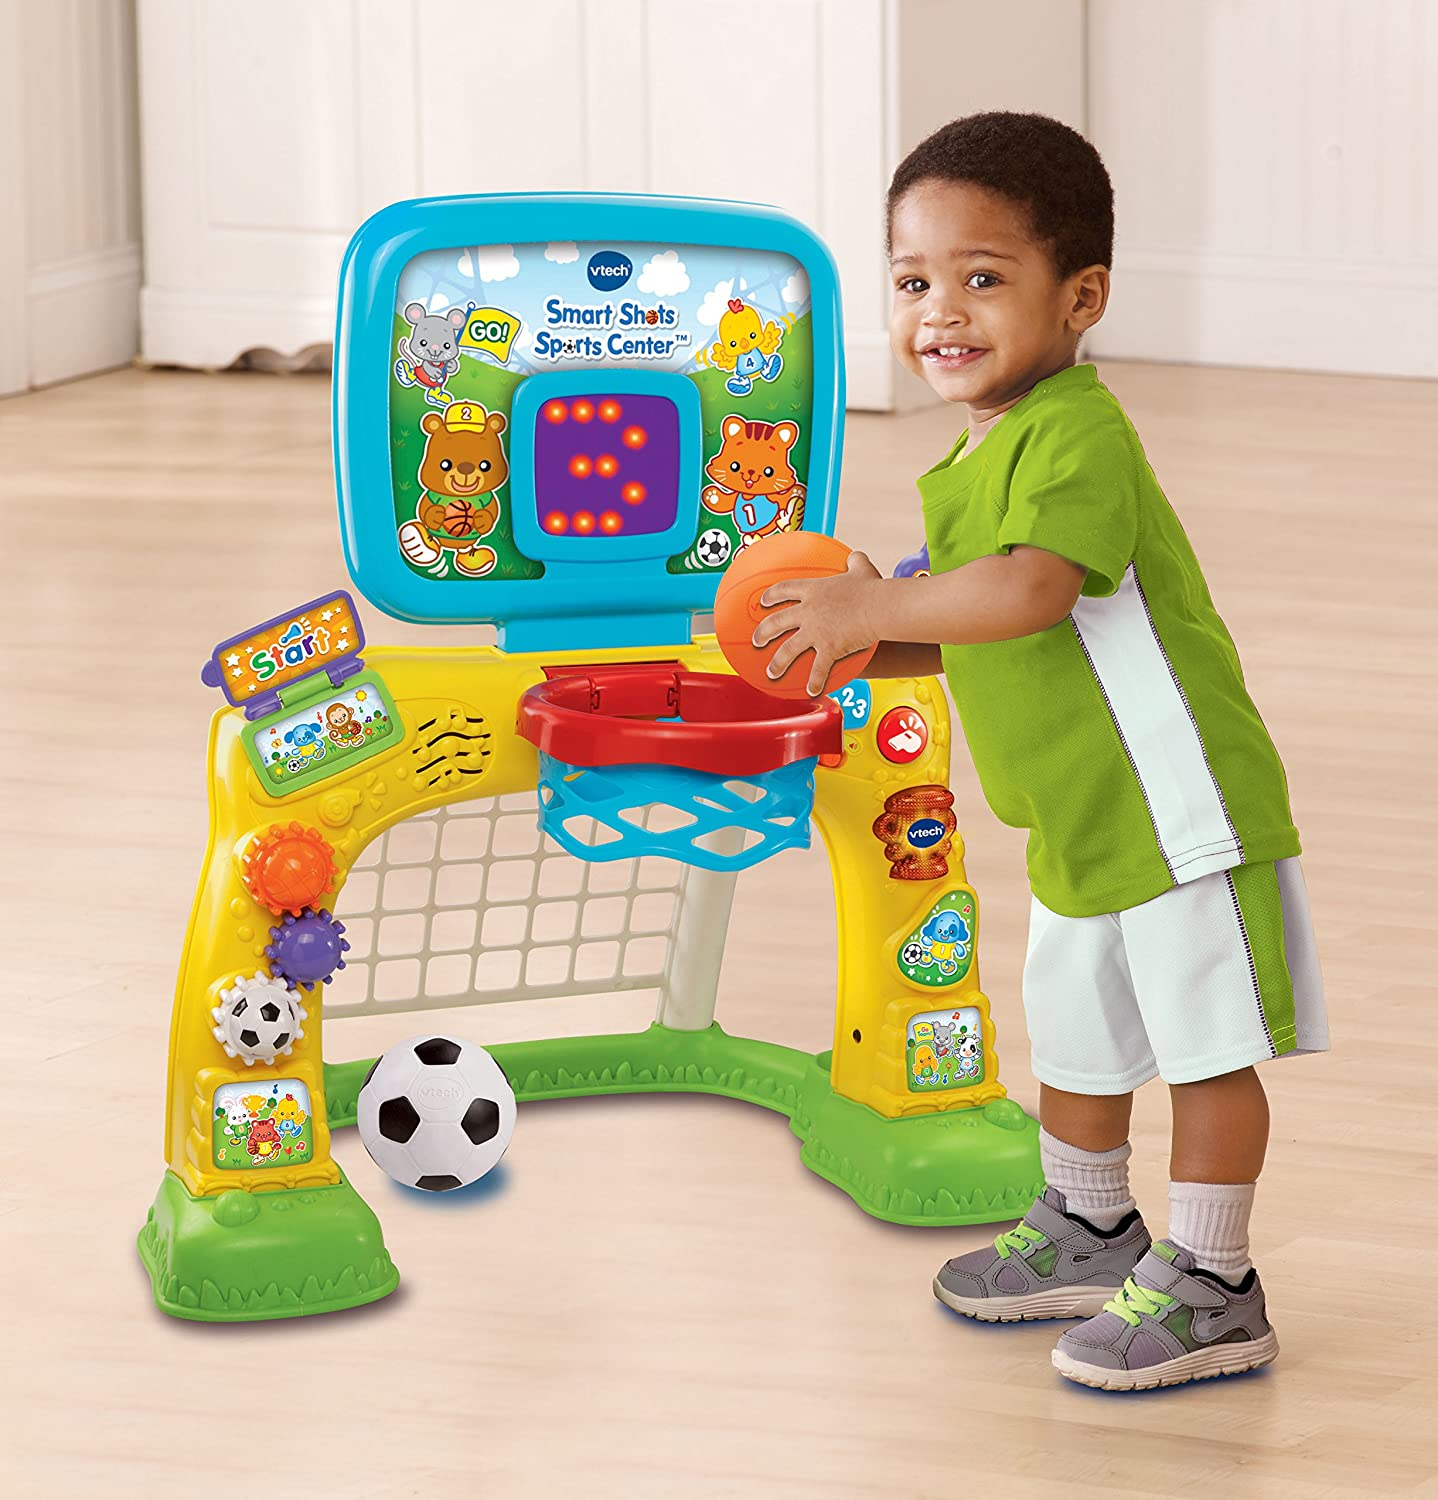 The Best Of Interactive toys for 2 Year Olds Images